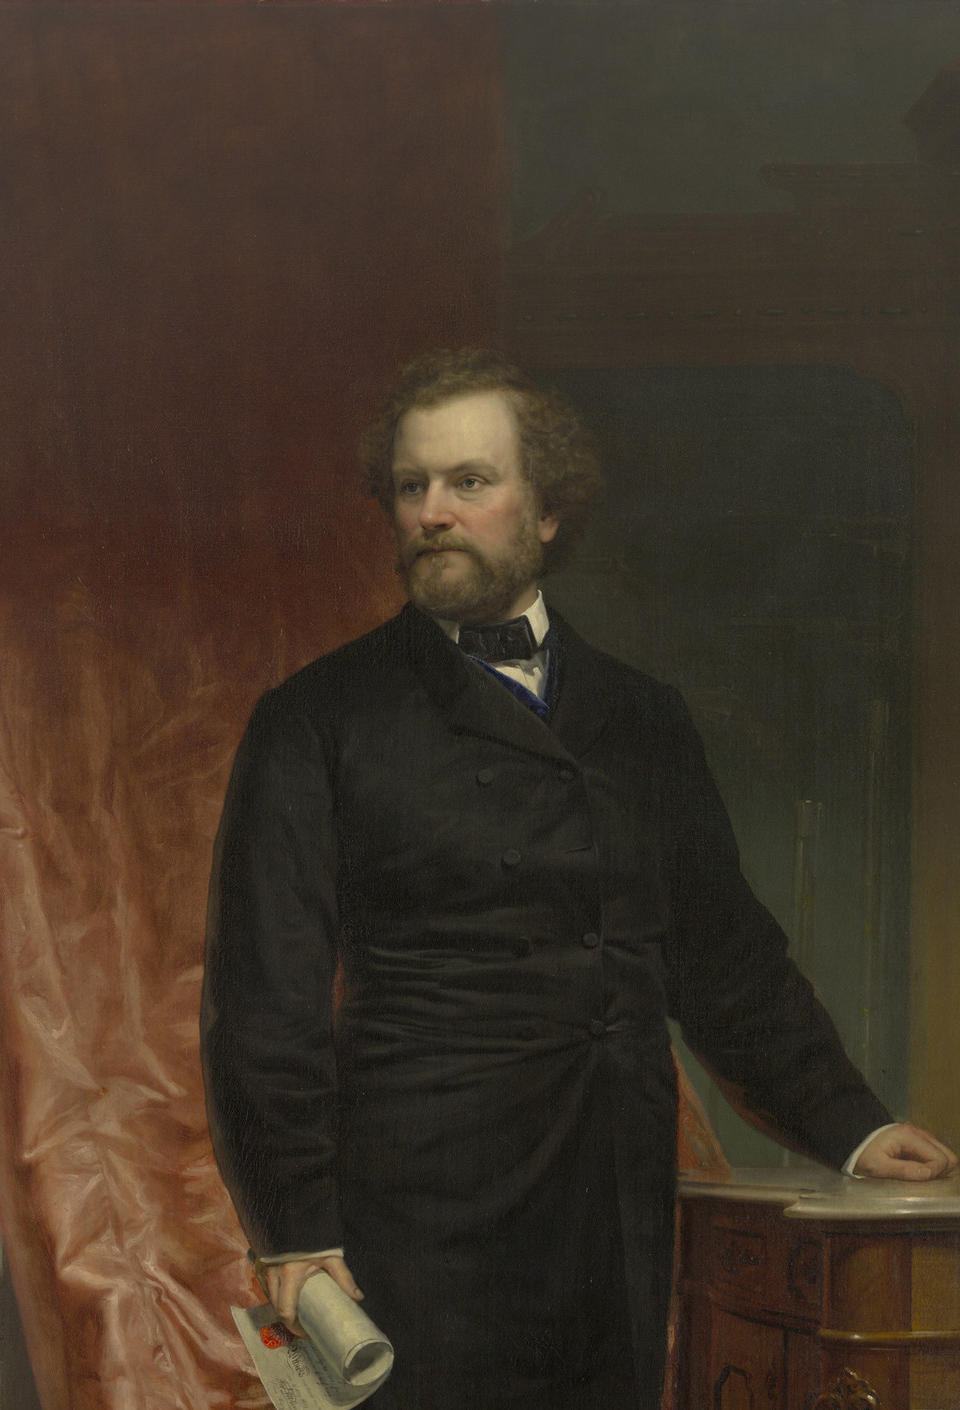 10 Things You May Not Know About Samuel Colt